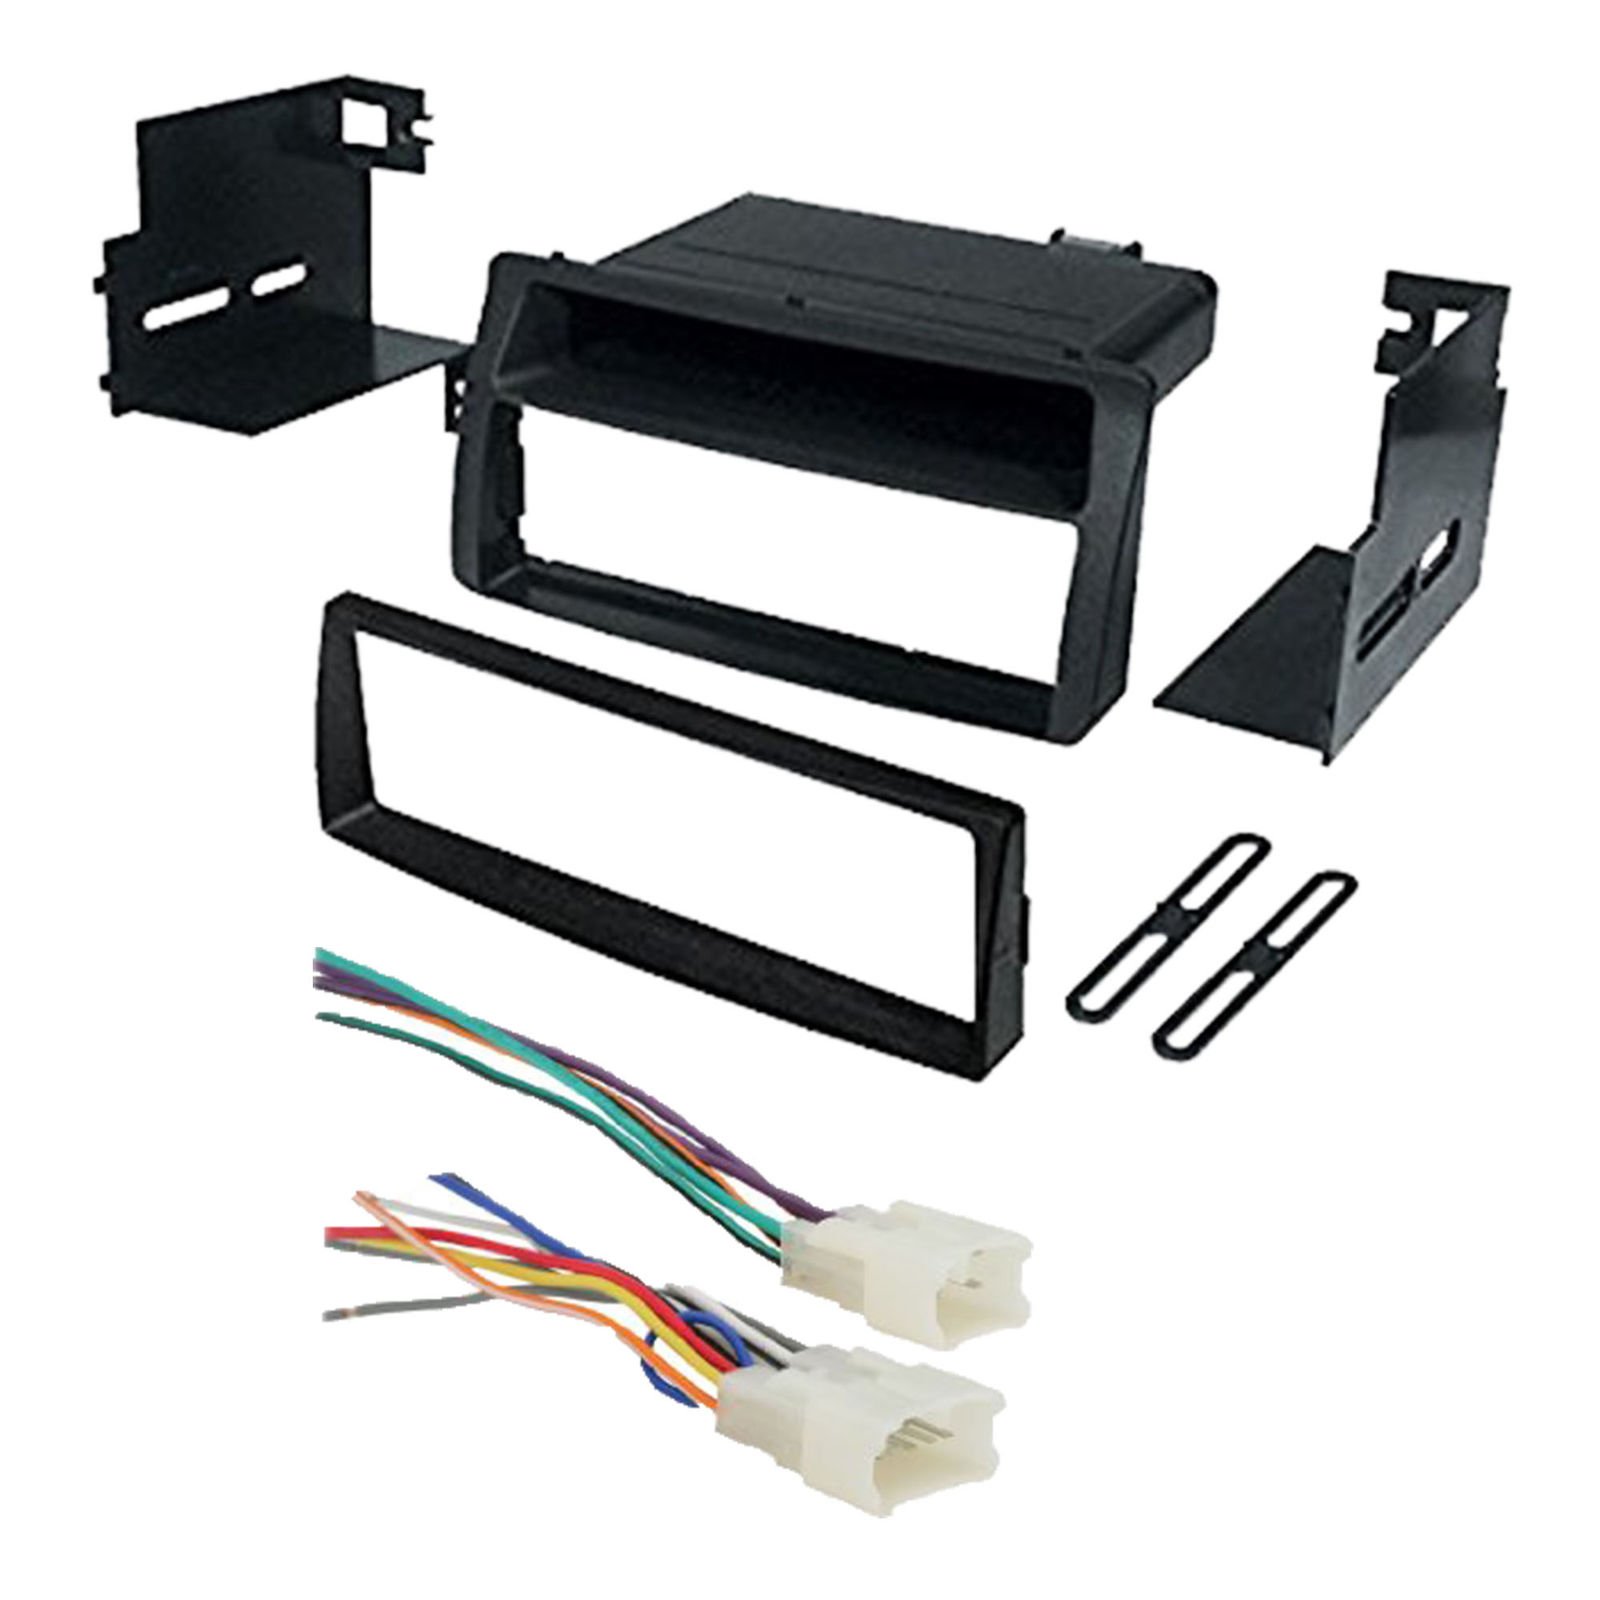 hight resolution of toyota corolla single din car stereo radio install dash mount kit radio wiring harness kits